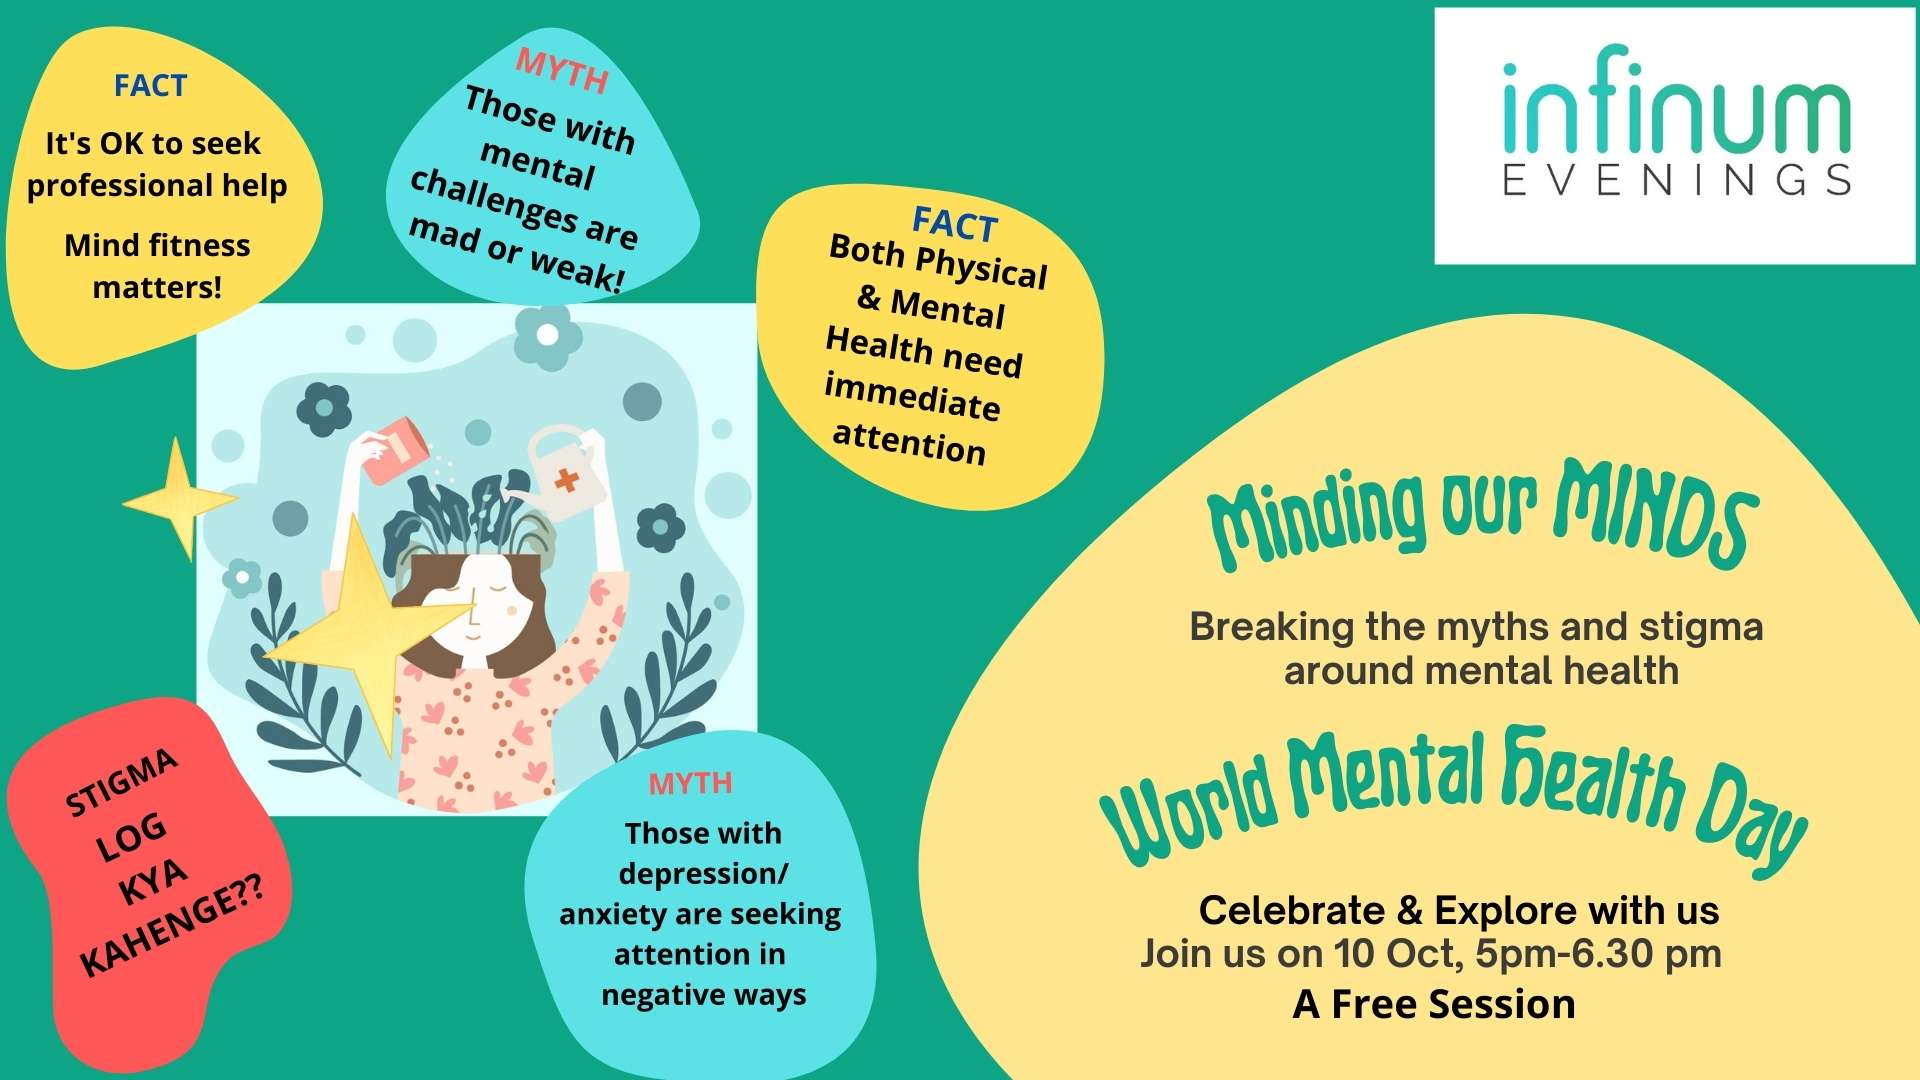 Infinum Evenings: Minding our Minds – Breaking Myths & Stigma; World Mental Health Day